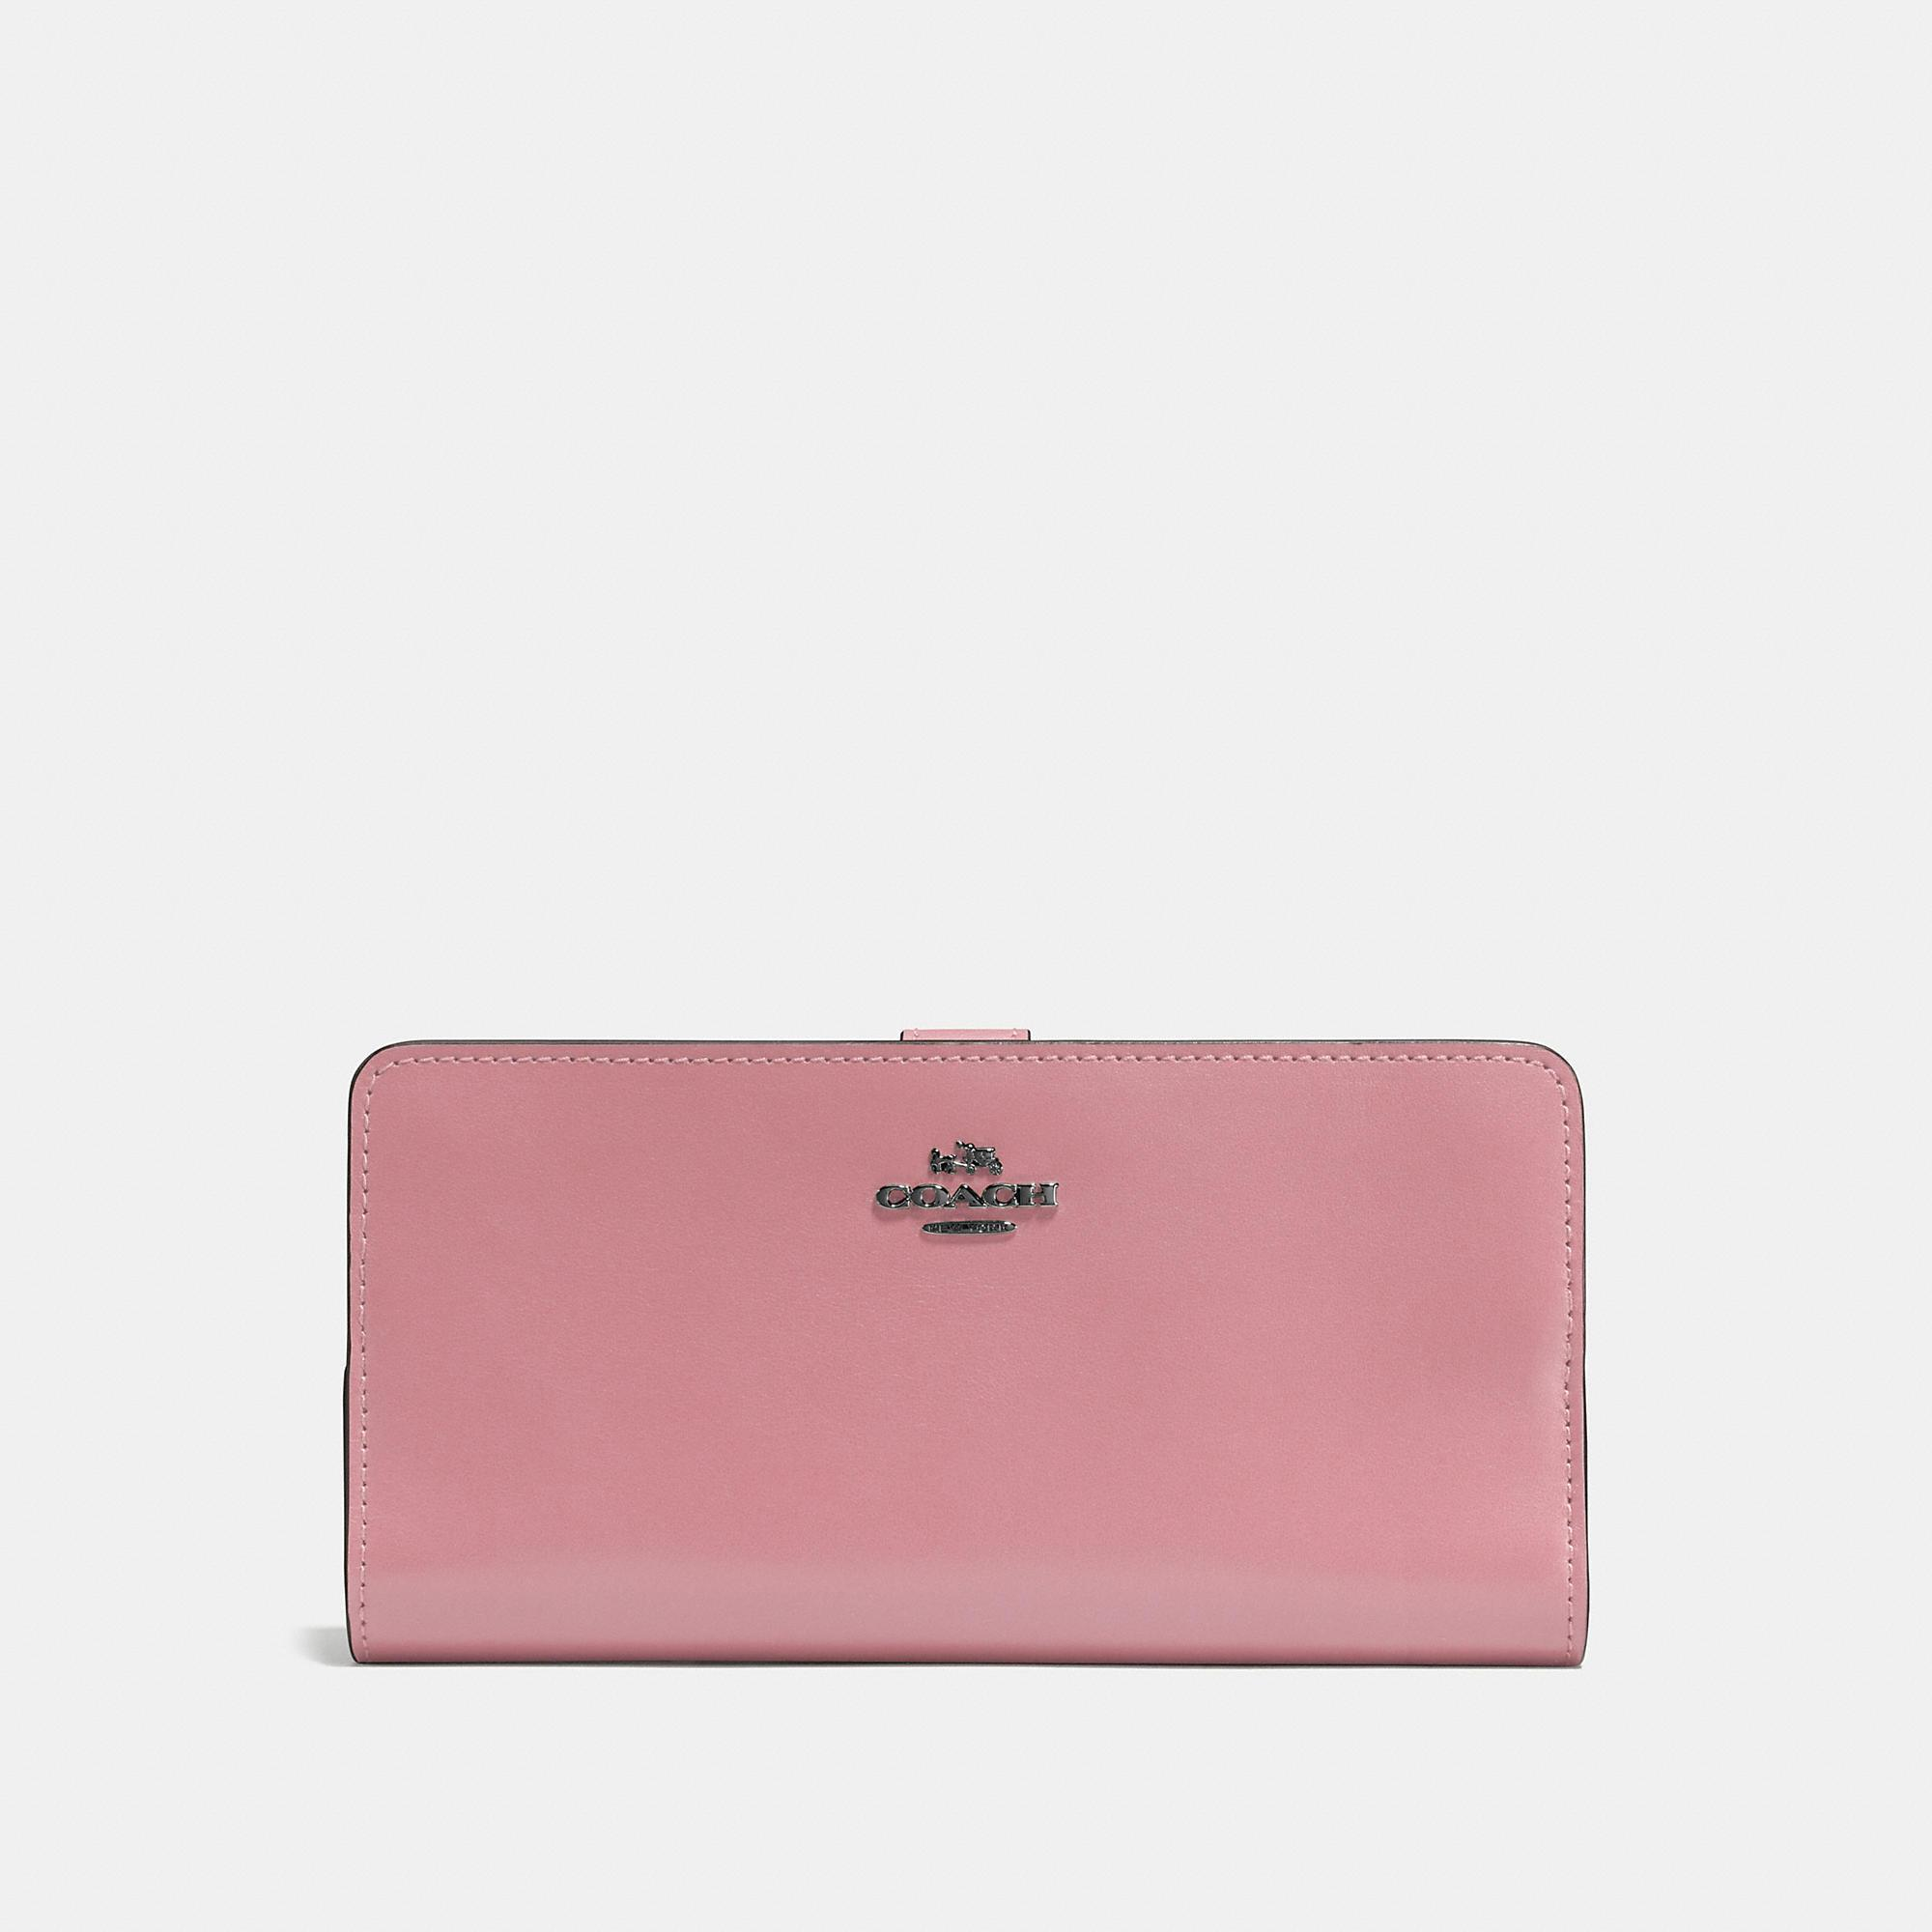 Coach Skinny Wallet In Refined Calf Leather In Dusty Rose/dark Gunmetal